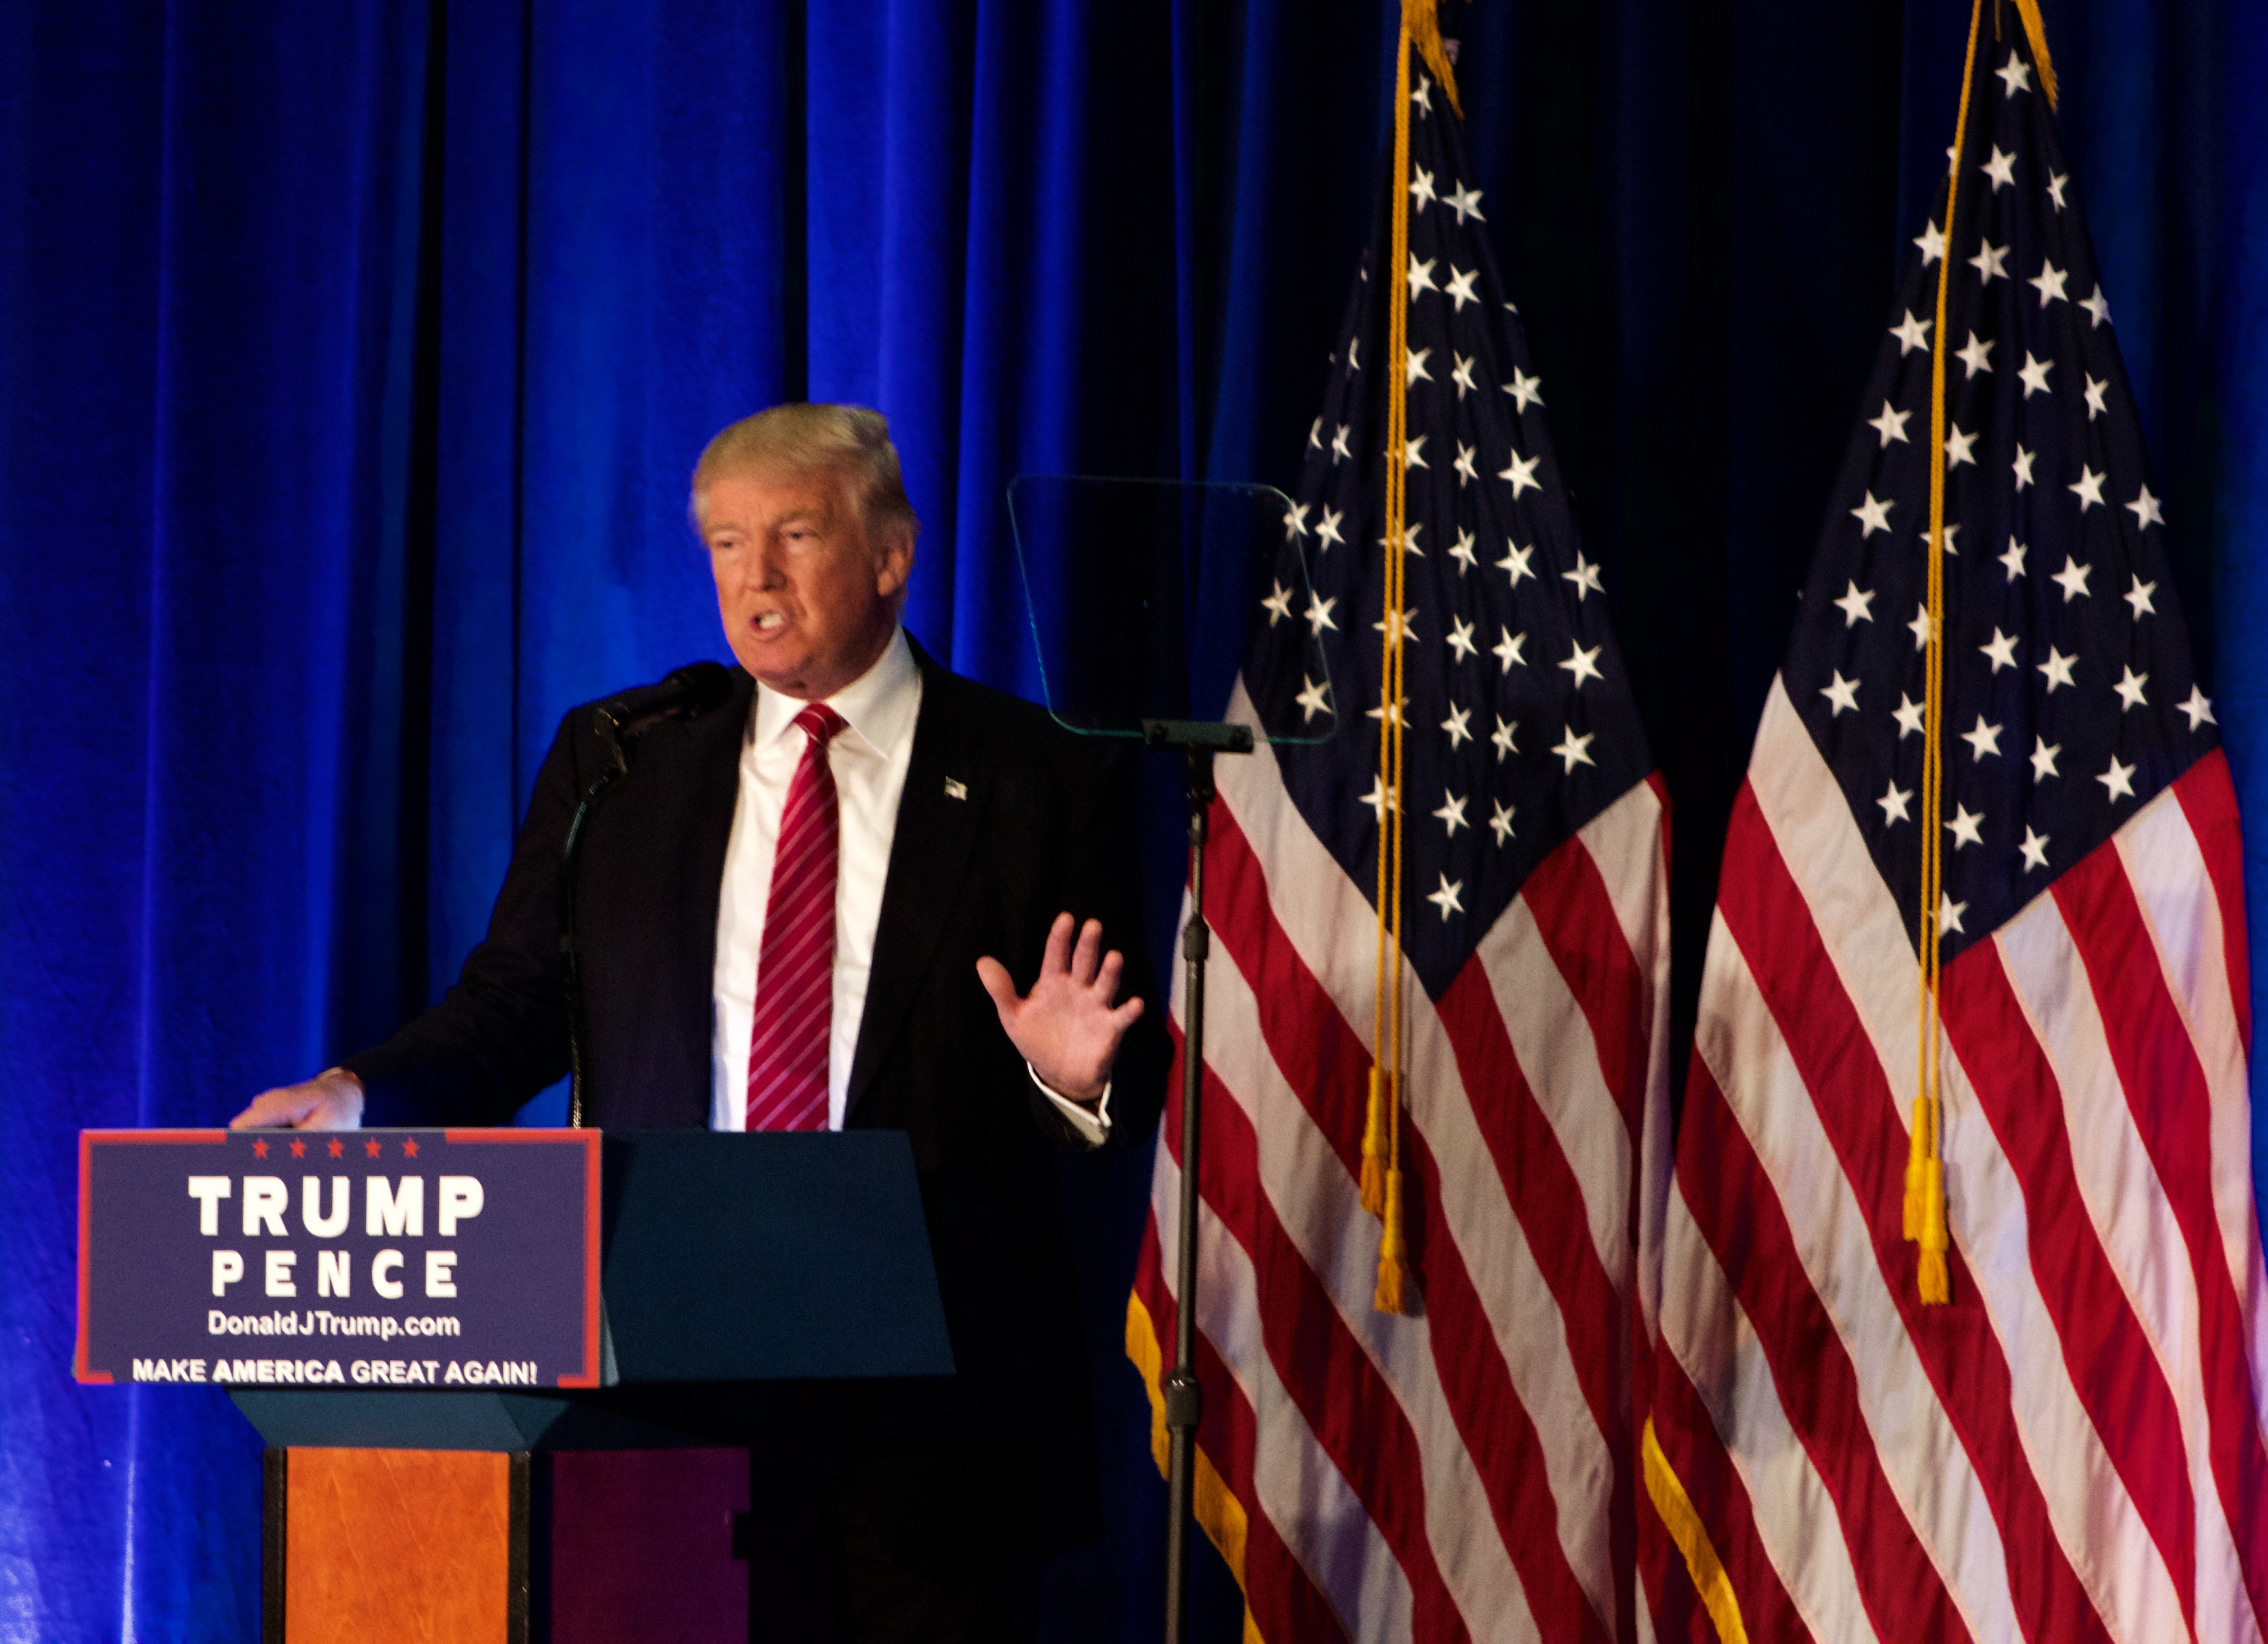 Republican Party Presidential Nominee lays out his plan to defeat ISIS to a crowd of supporters in Youngstown State University's Chestnut Room.